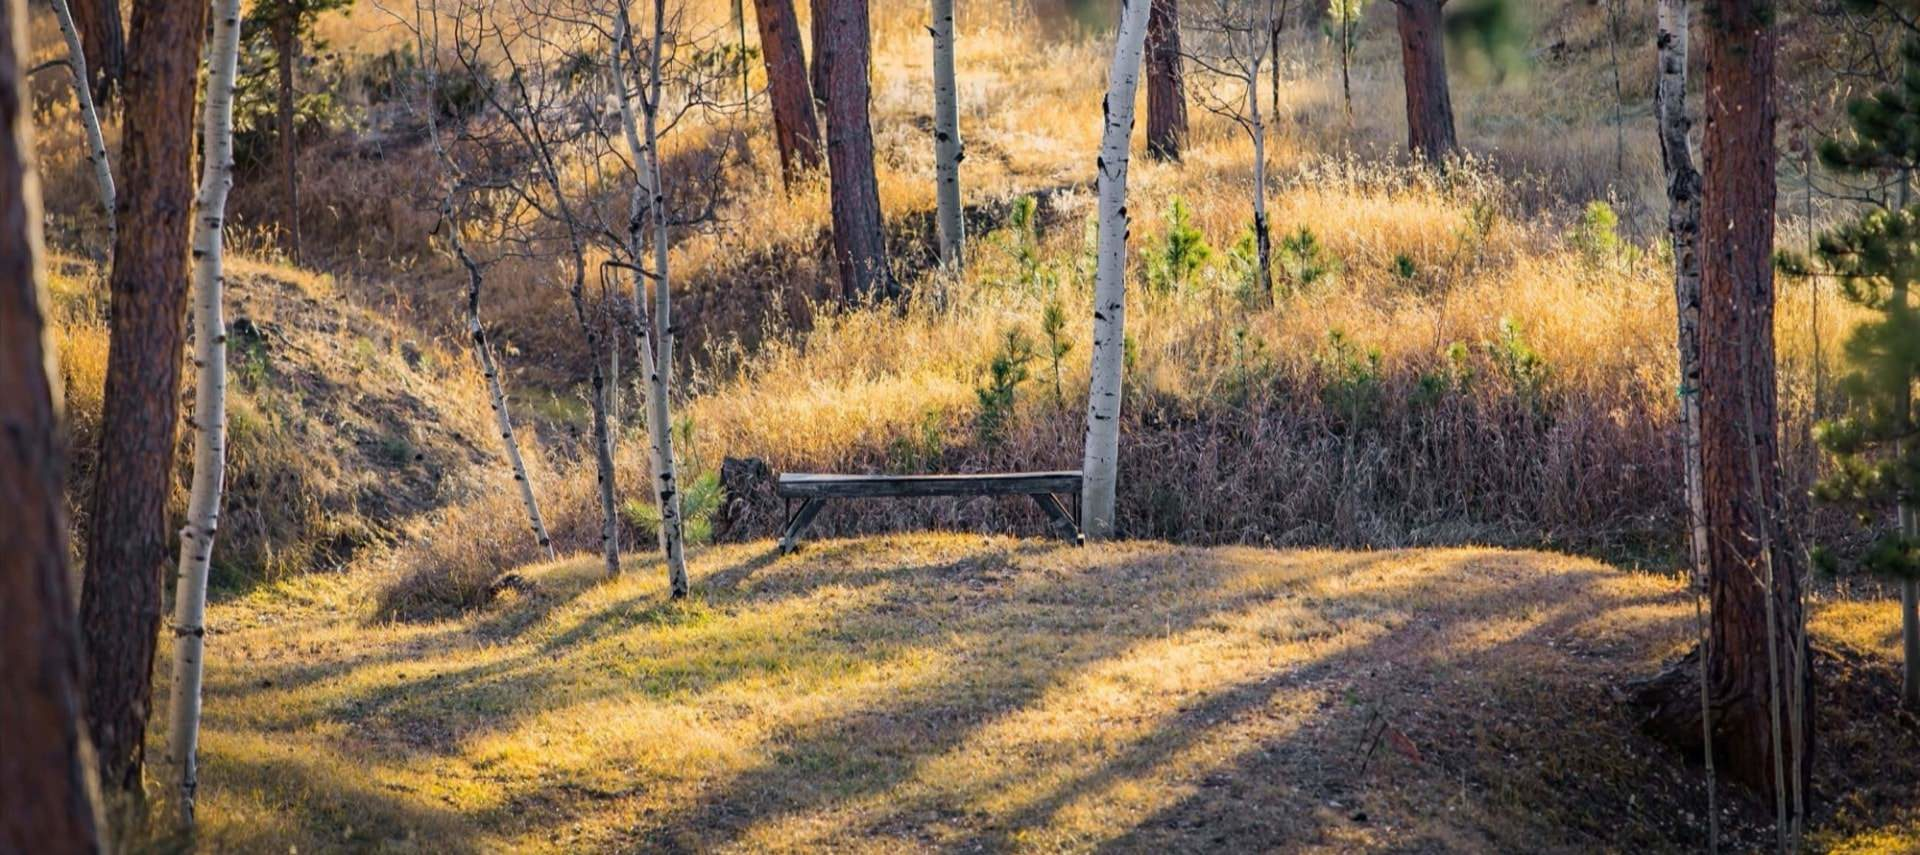 Cut meadow grass with large wooden bench surrounded by tall grasses and trees with the sun shining through